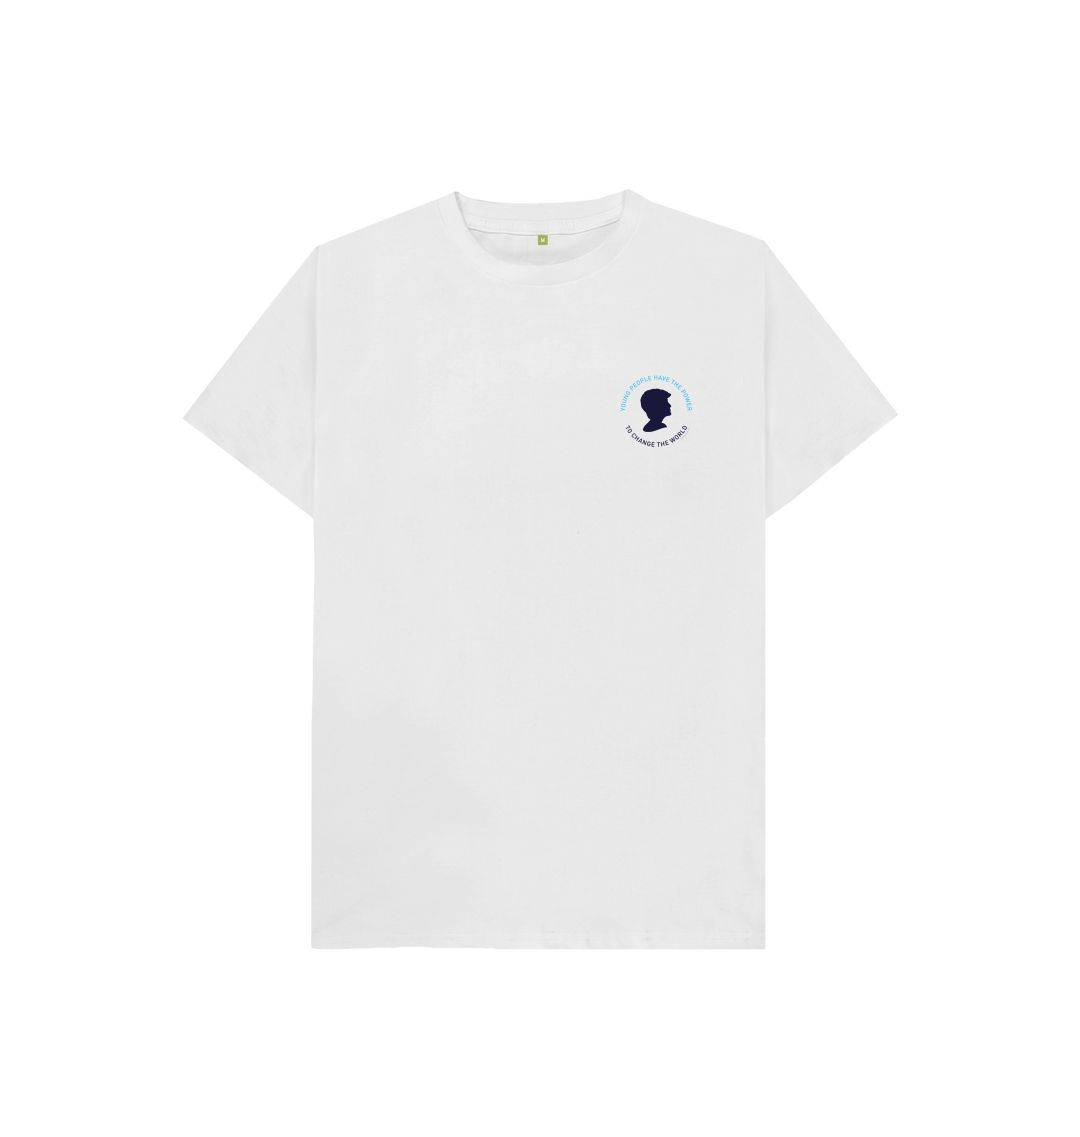 White Diana Tee (Kids)